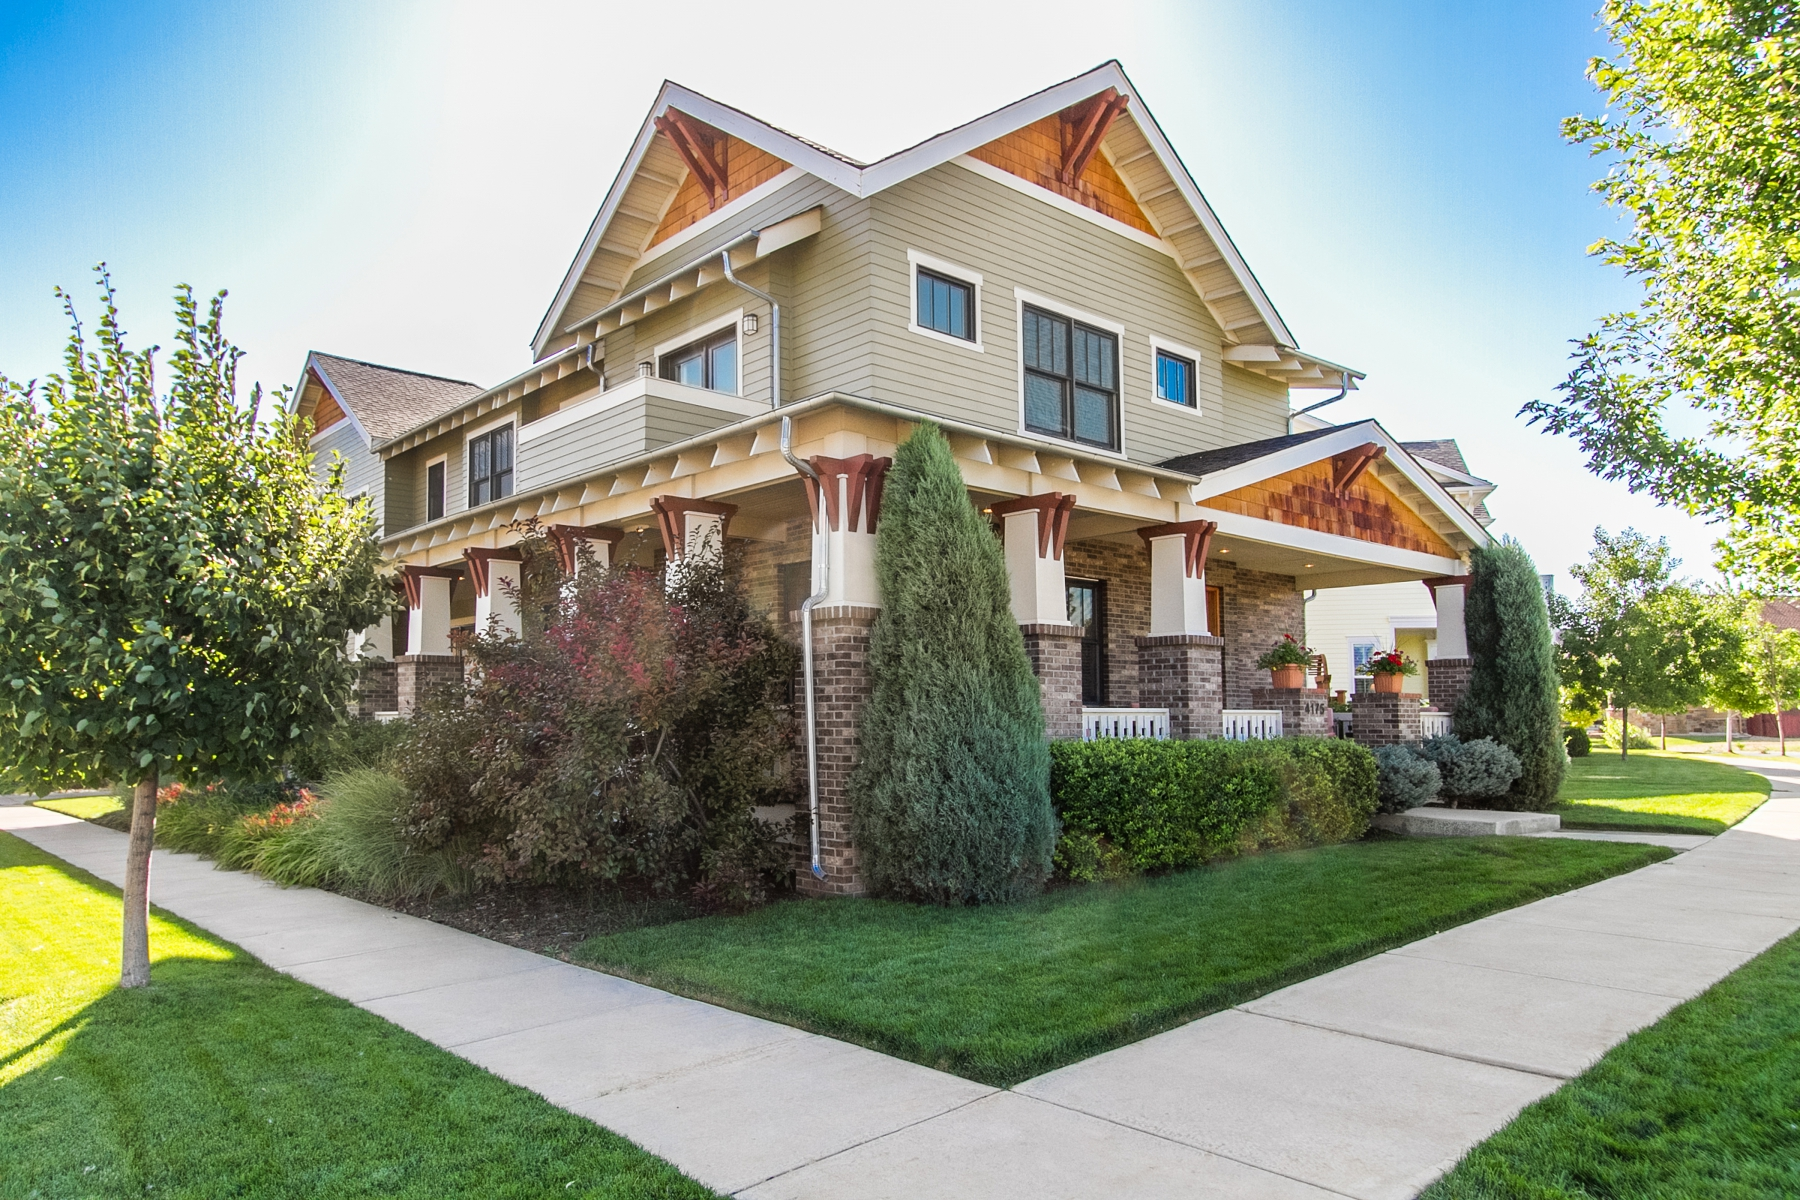 Single Family Home for Sale at Architecturally magnificent Craftsman style home showcasing mountain views 4175 W 116th Way Westminster, Colorado 80031 United States